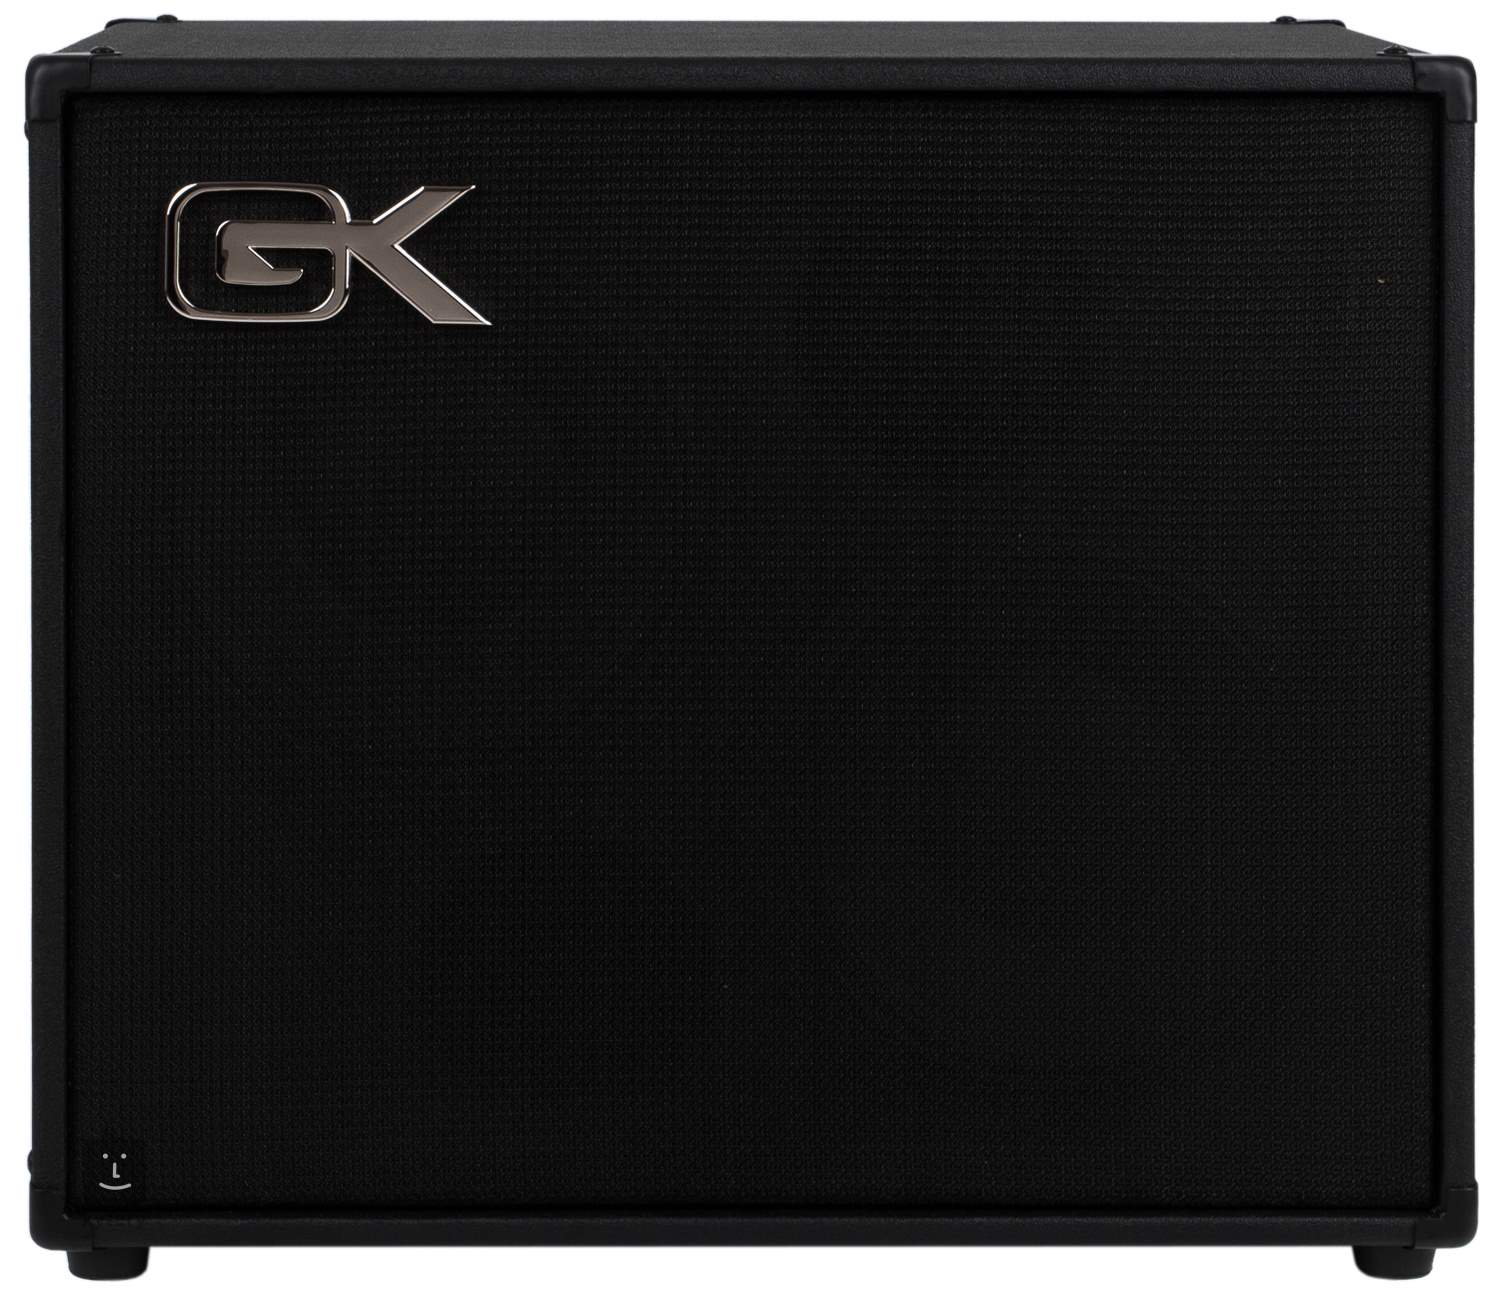 other cabinet amp and ppimv head plexi cab accessories p marshall guitar